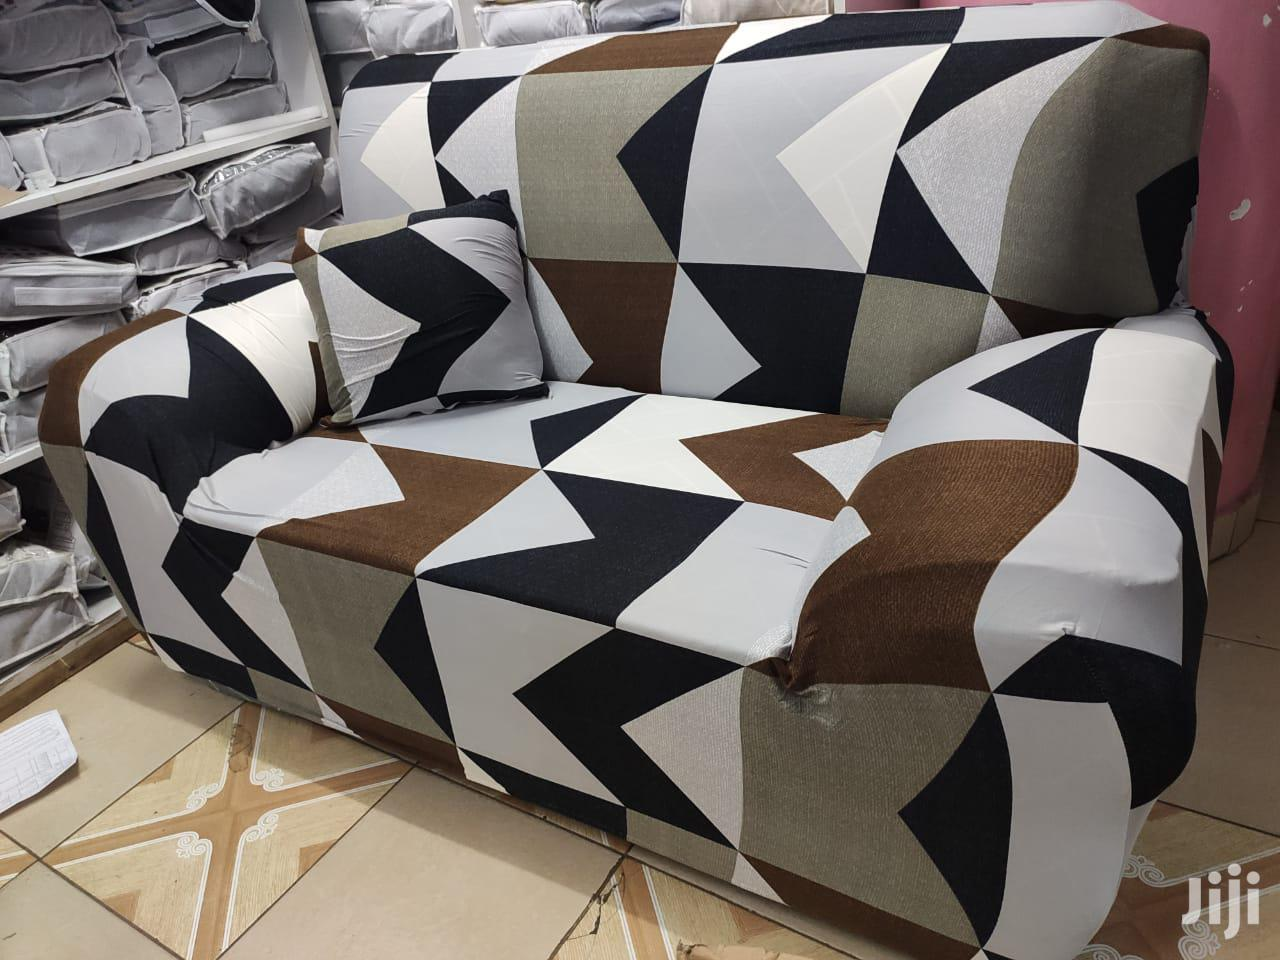 Sofa Seat Covers 7 Seater(3,2,1,1)